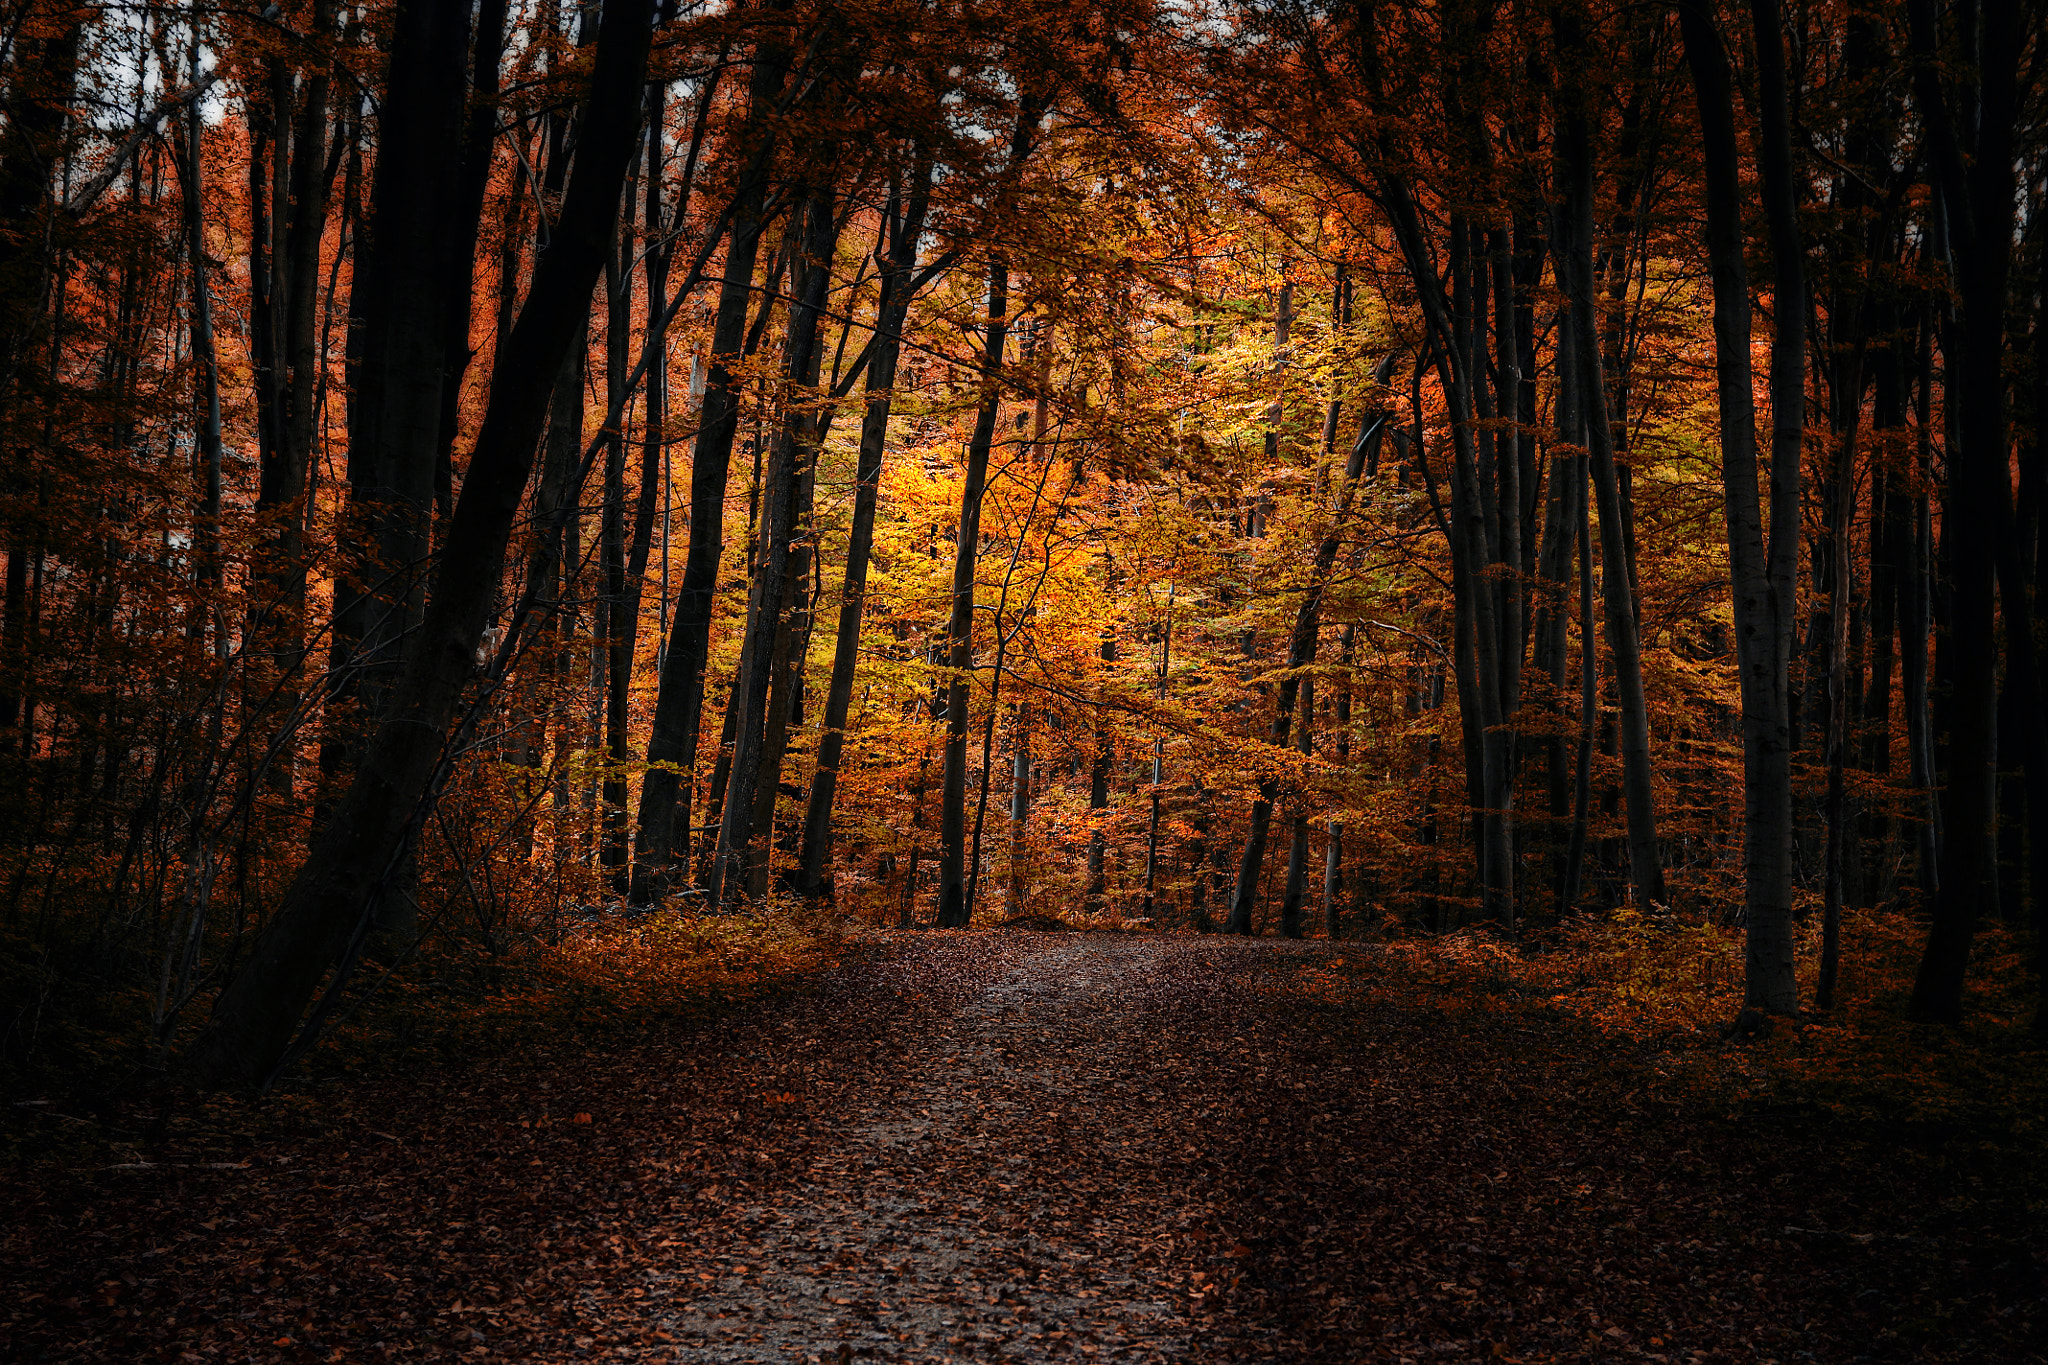 Photograph golden lights by Claudia Moeckel on 500px